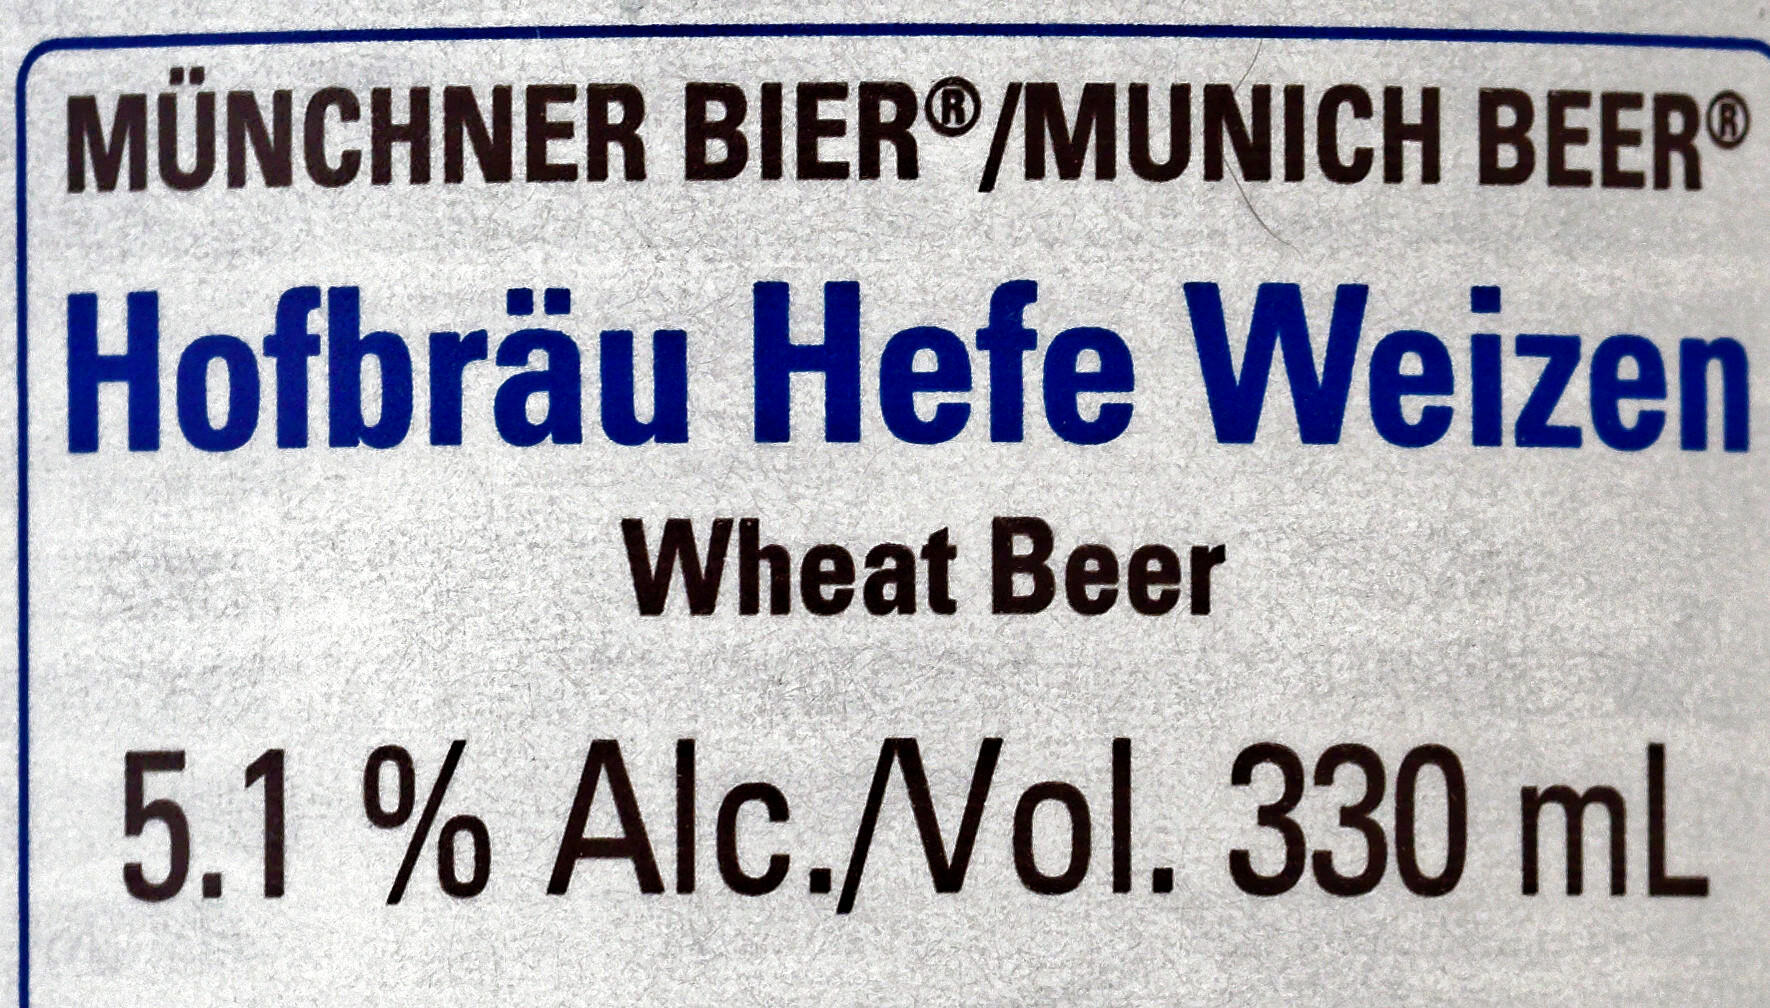 This should be Beer-label-1.jpeg.  Is it missing?